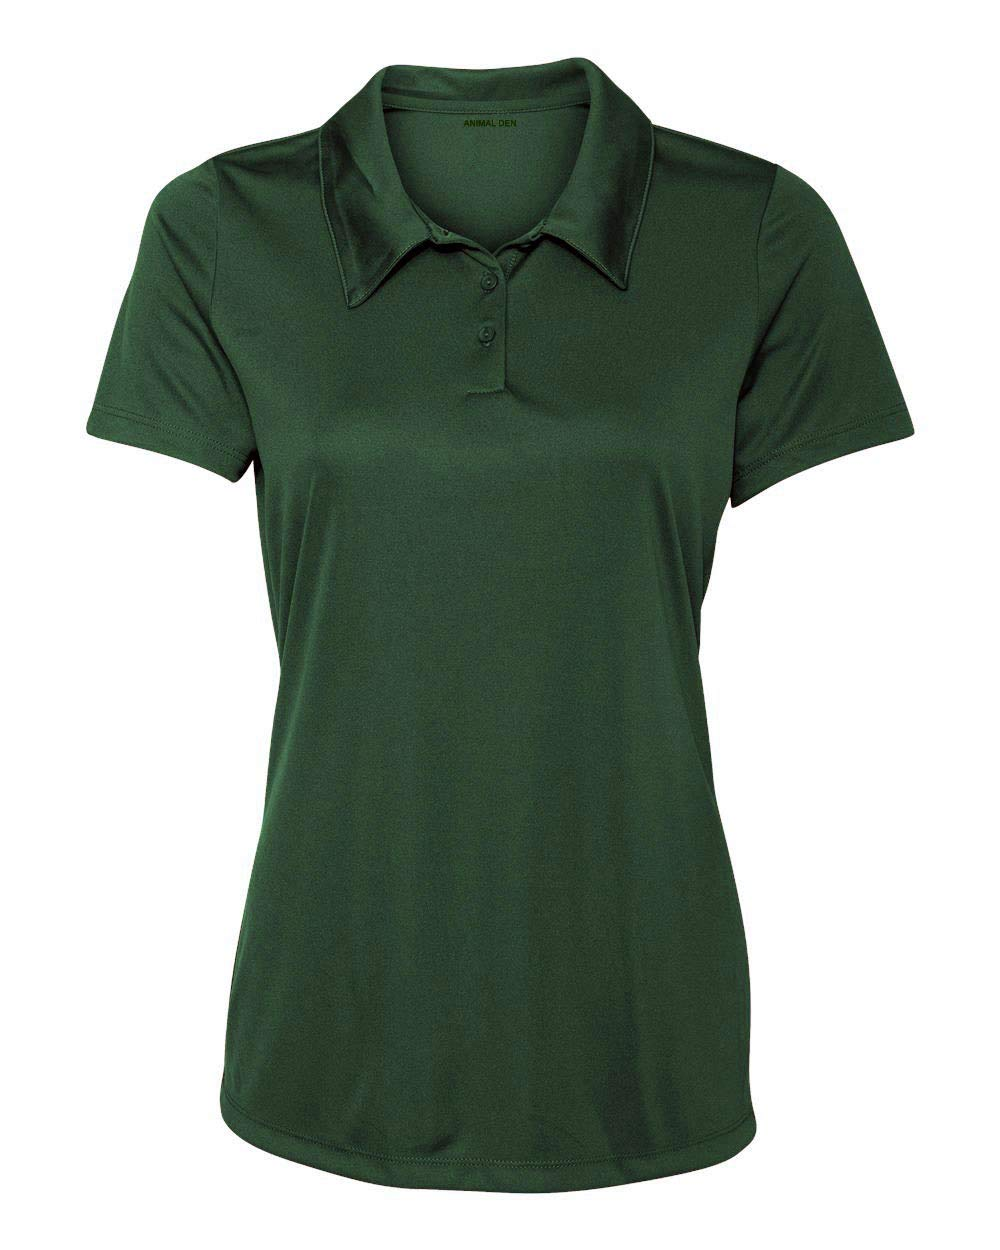 Animal Den Women's Dry-Fit Golf Polo Shirts 3-Button Golf Polo's in 20 Colors XS-3XL Shirt Forest-M by Animal Den